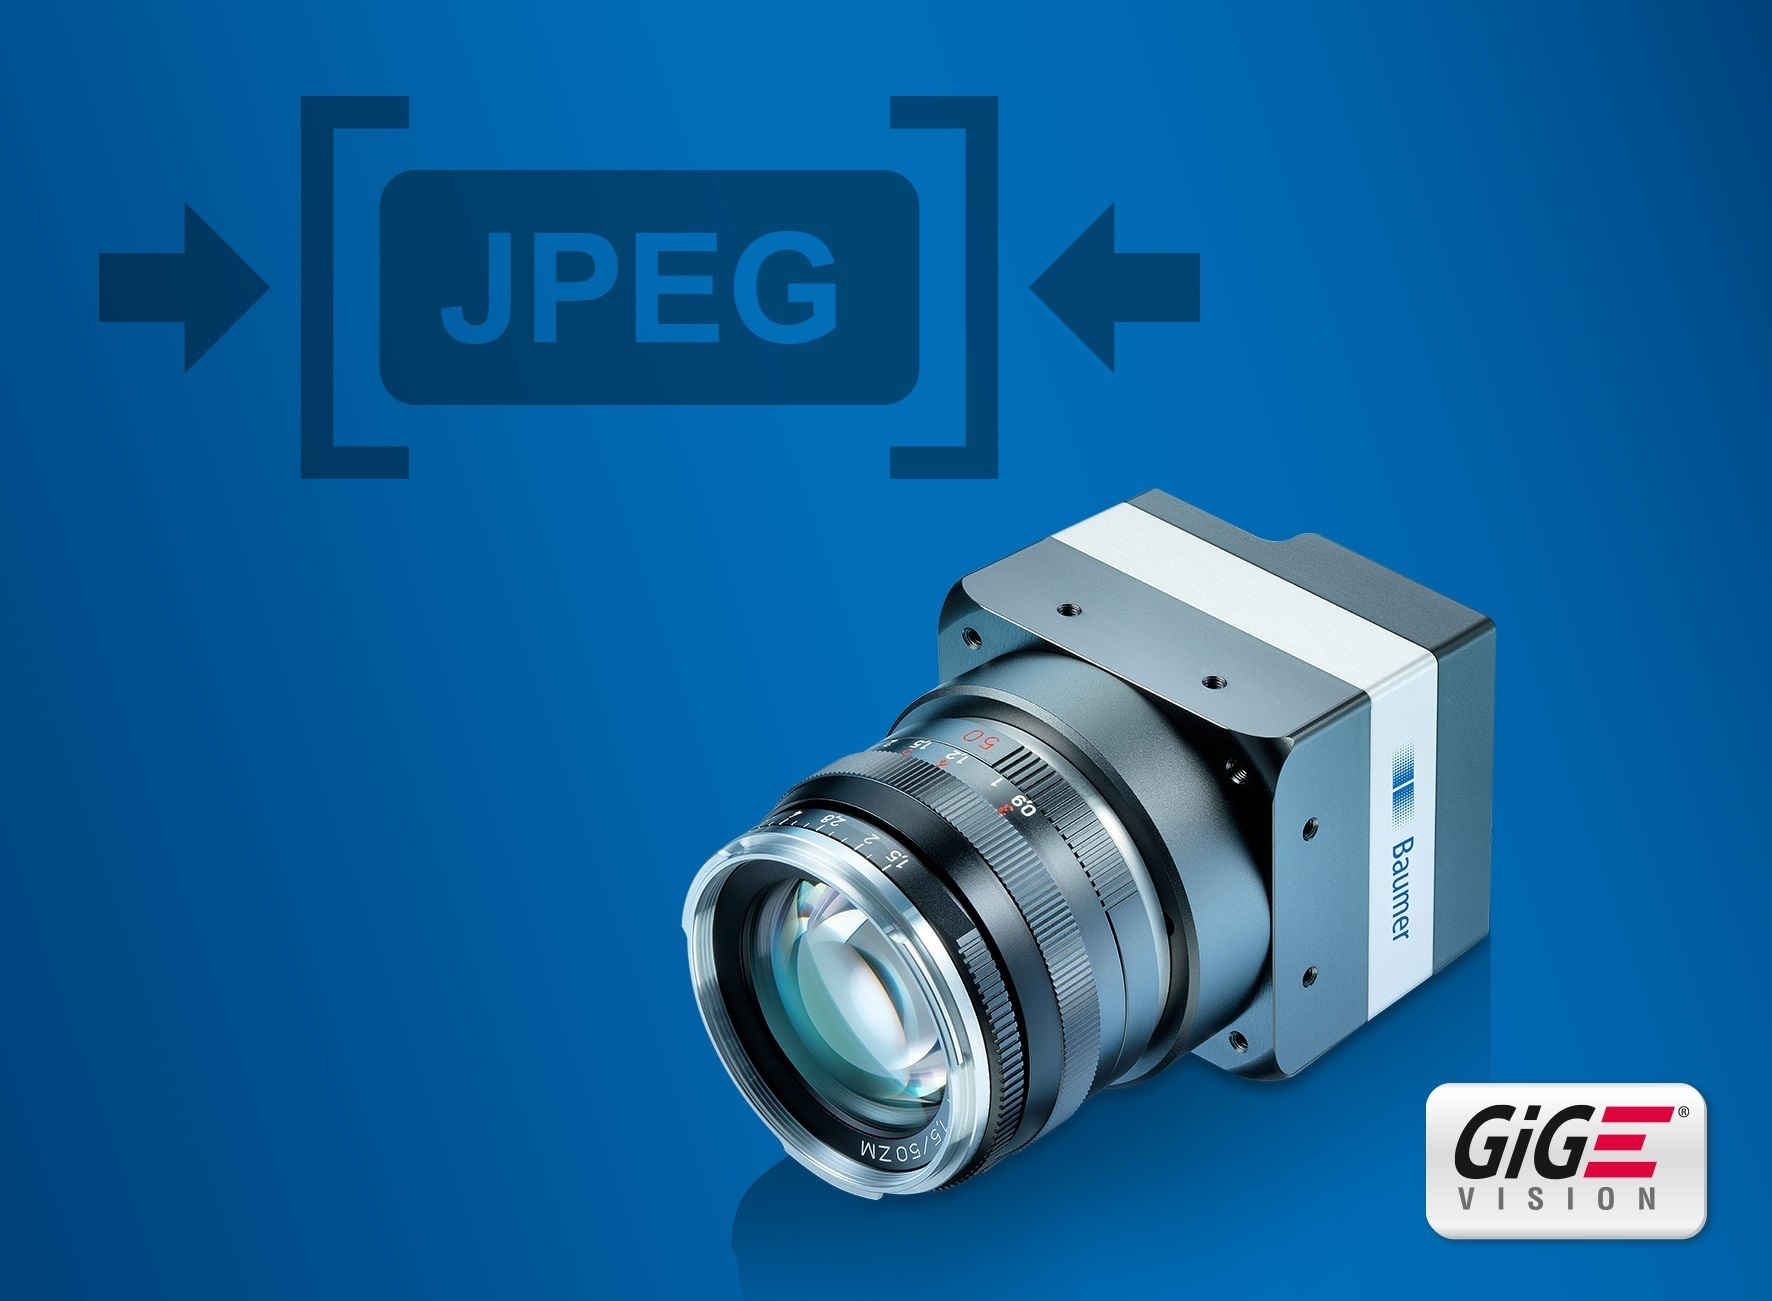 The new LX cameras with JPEG image compression save bandwidth, CPU load and storage space for a simplified, low-cost system design.